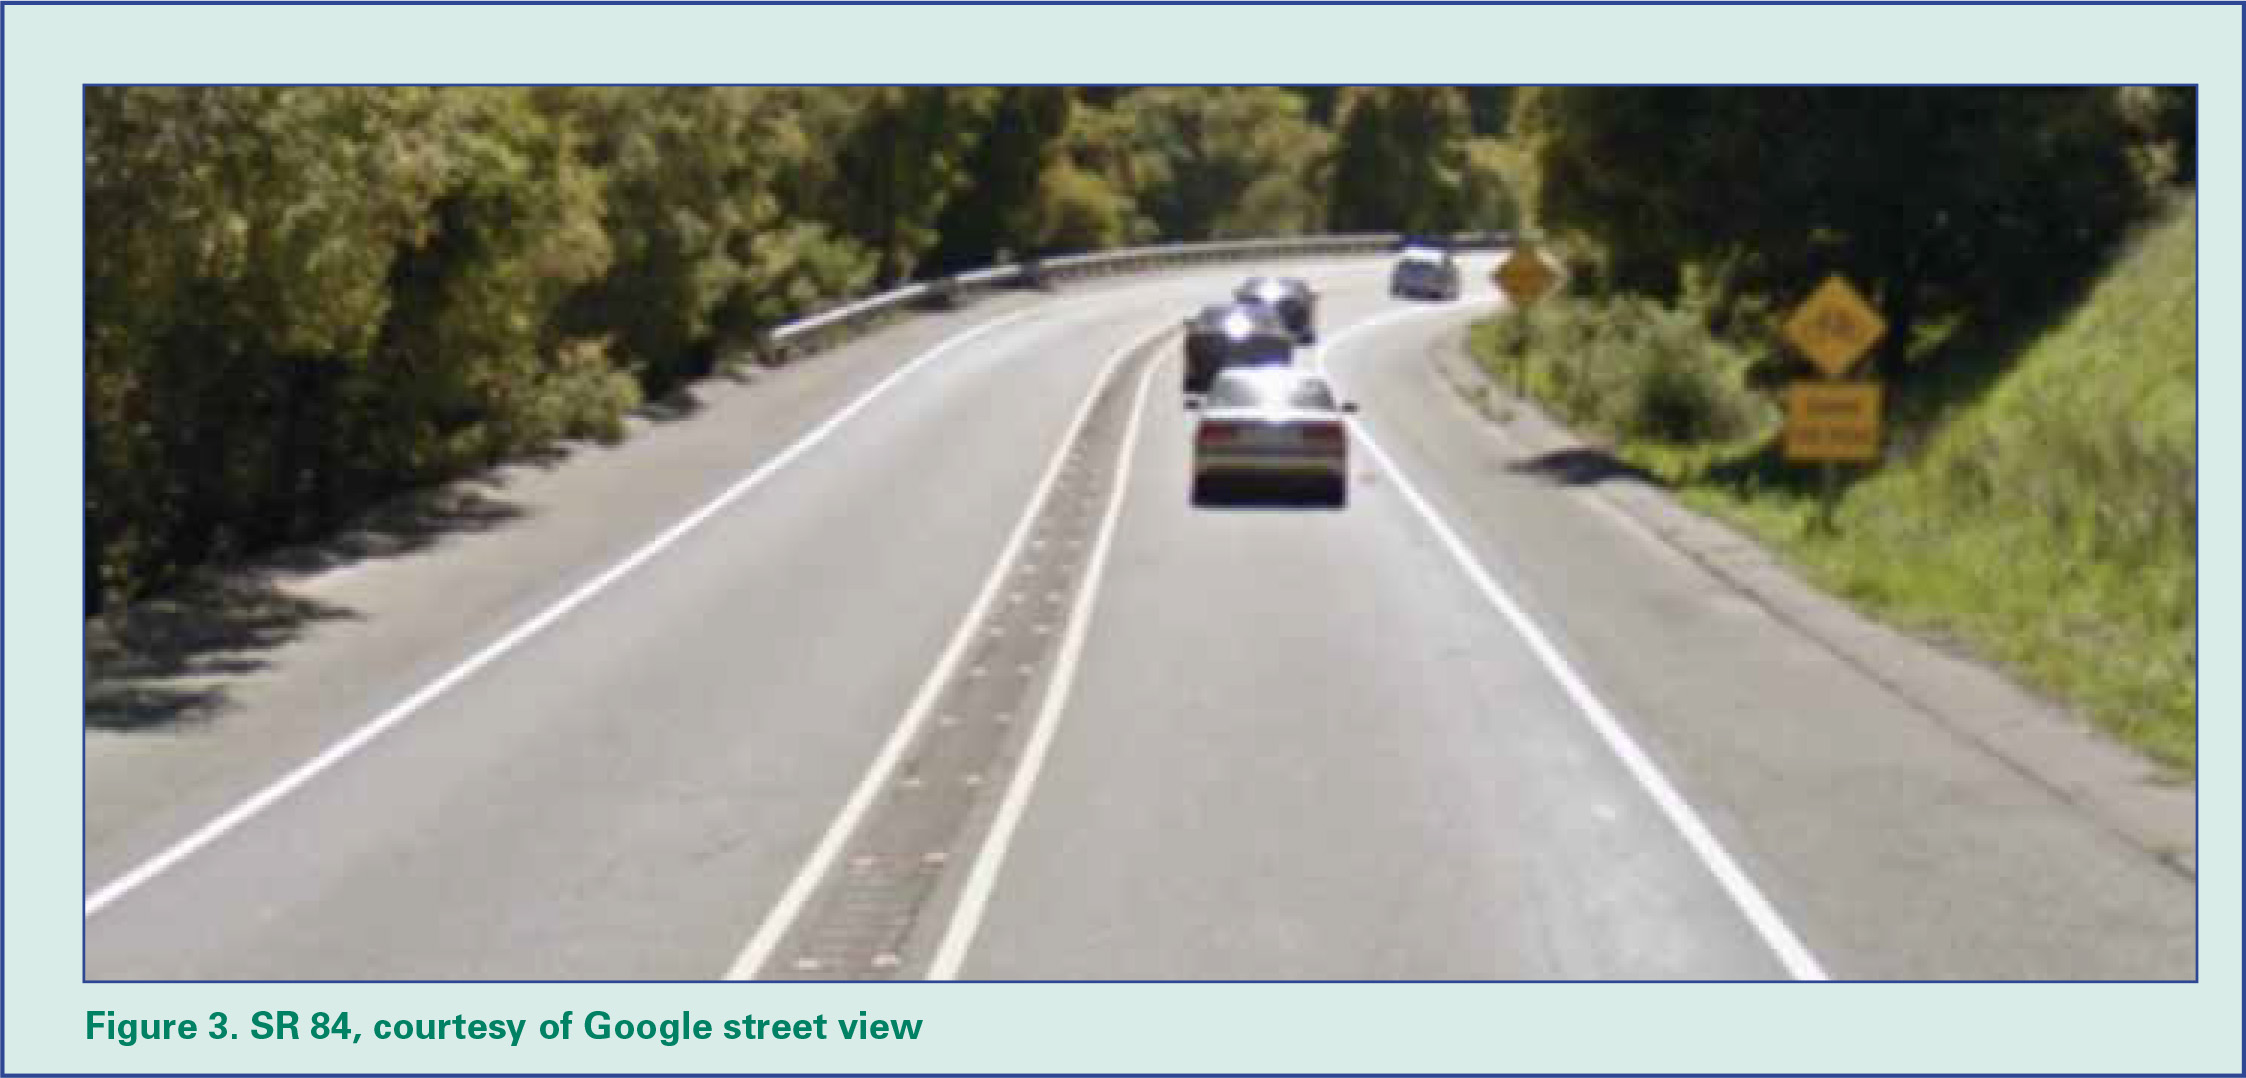 Figure 3: SR 84, courtesy of Google street view